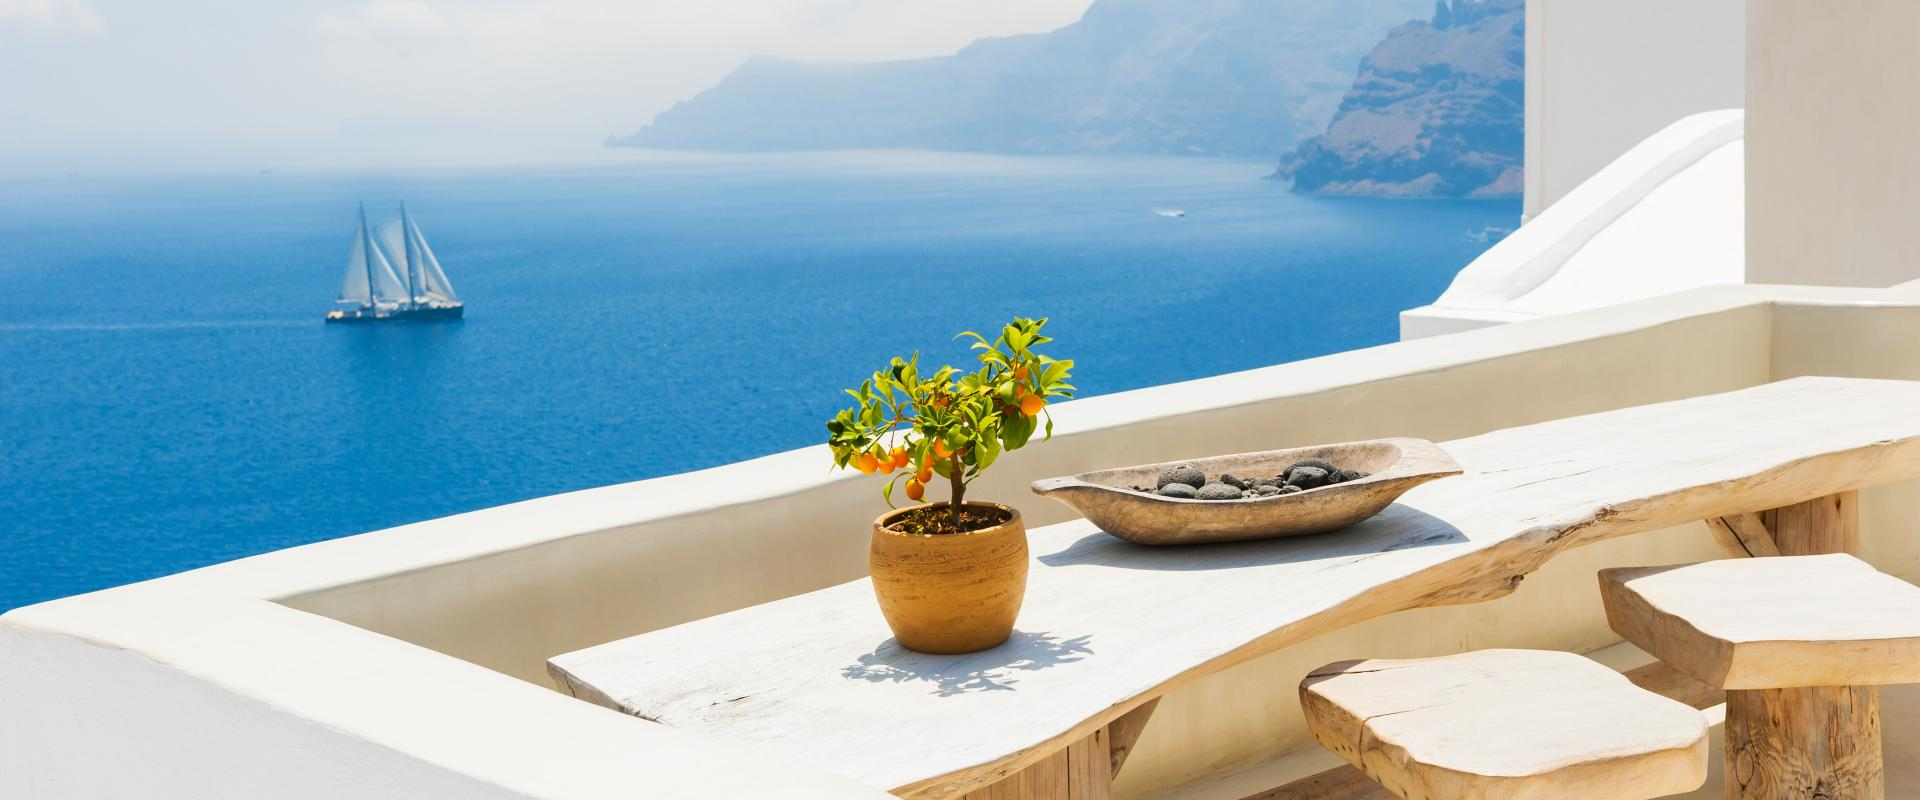 Table on a greek island by the sea with greek products